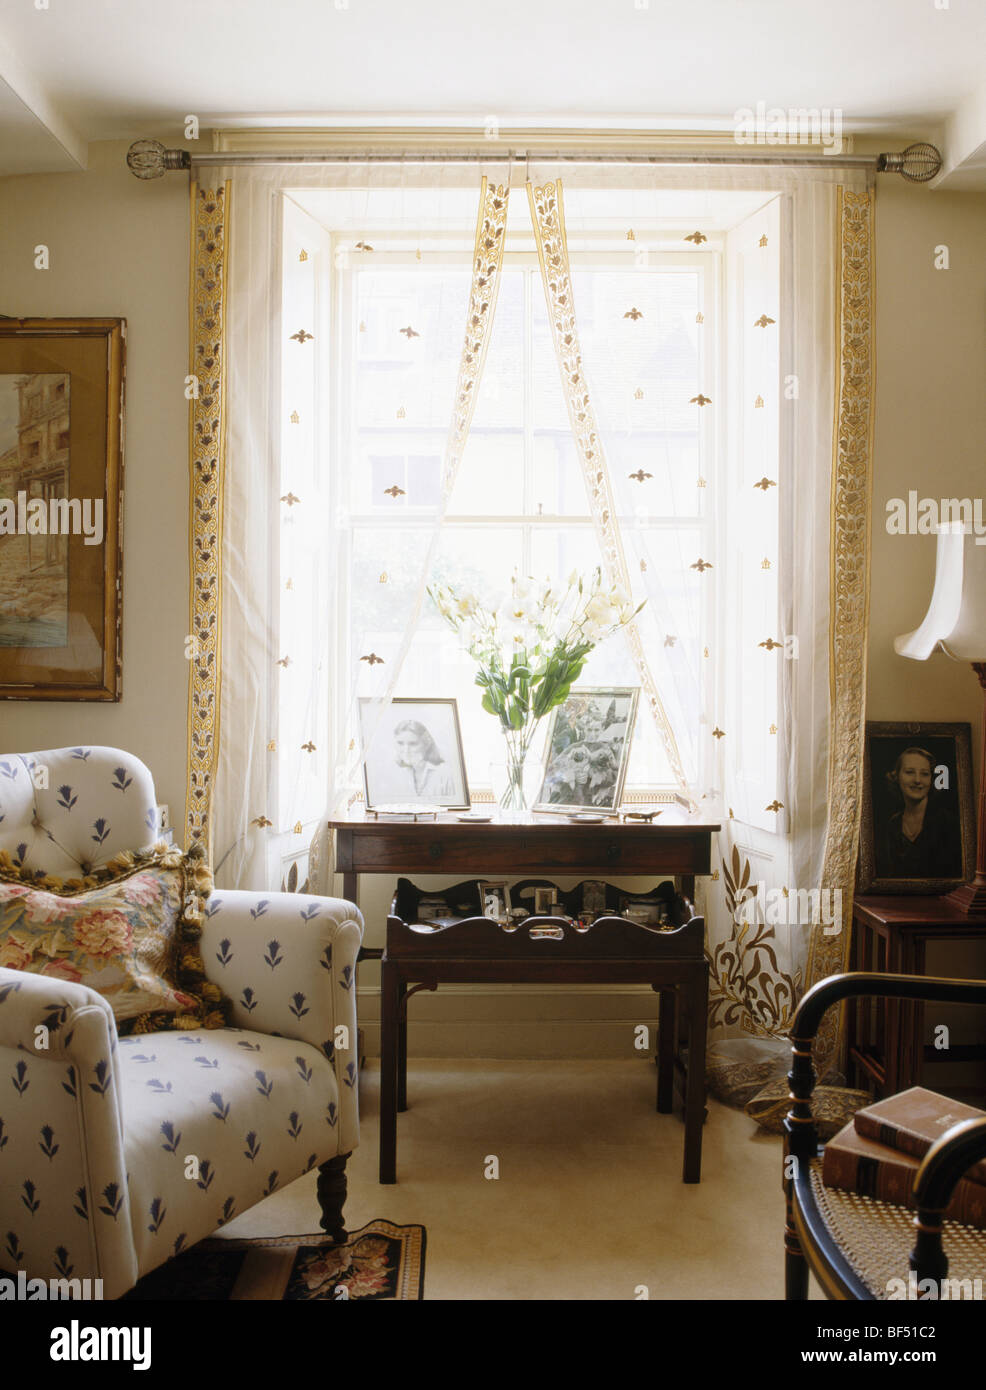 Cream patterned armchair in small cottage living room with